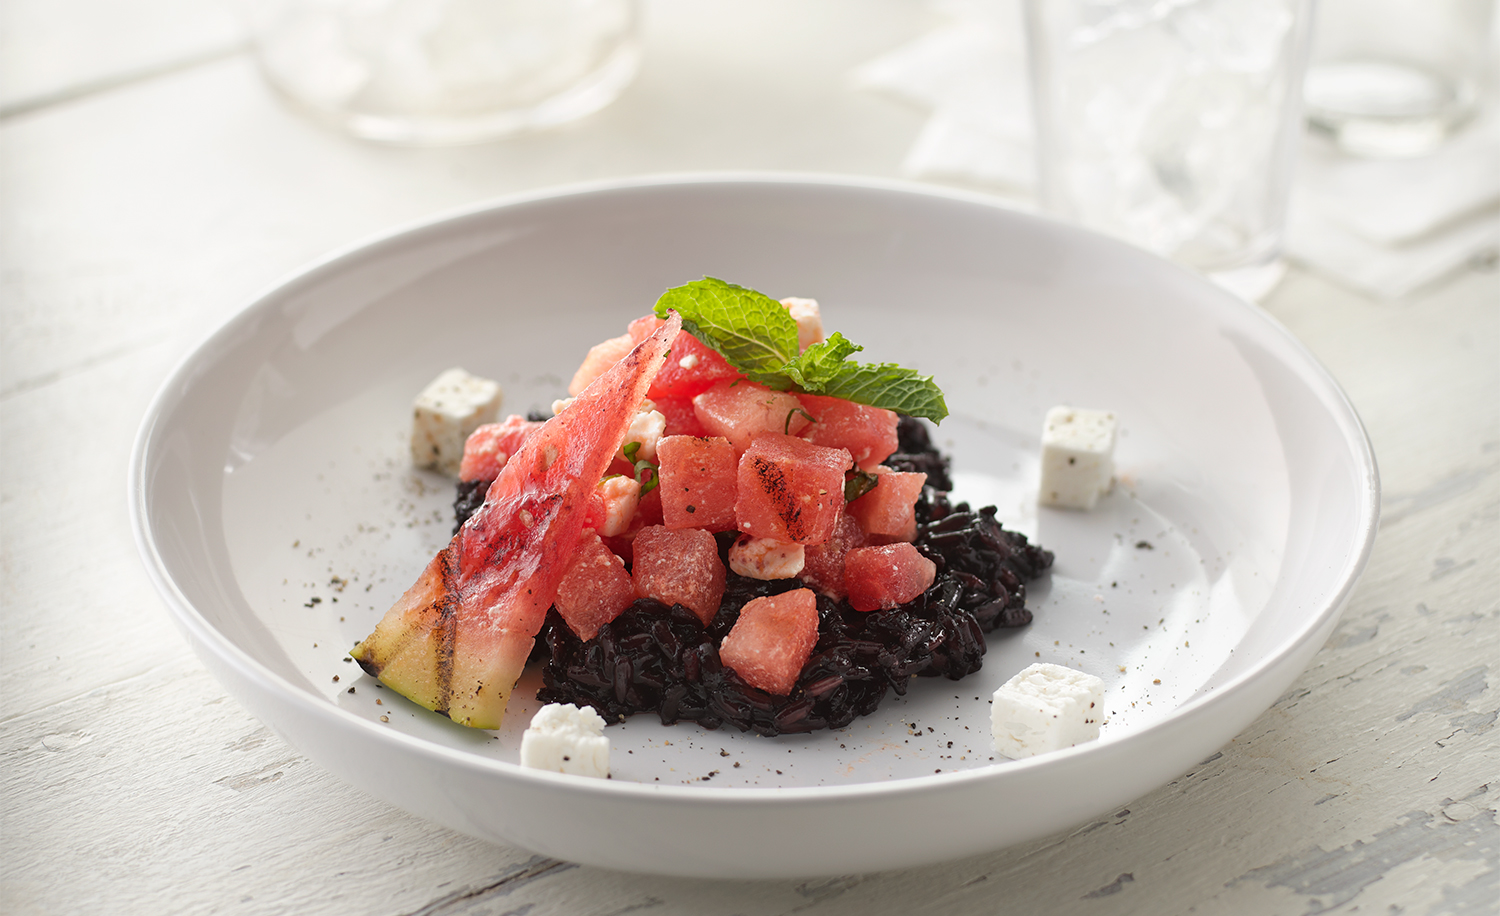 Grilled Watermellon and Black Rice Salad | Tony Kubat Photograph